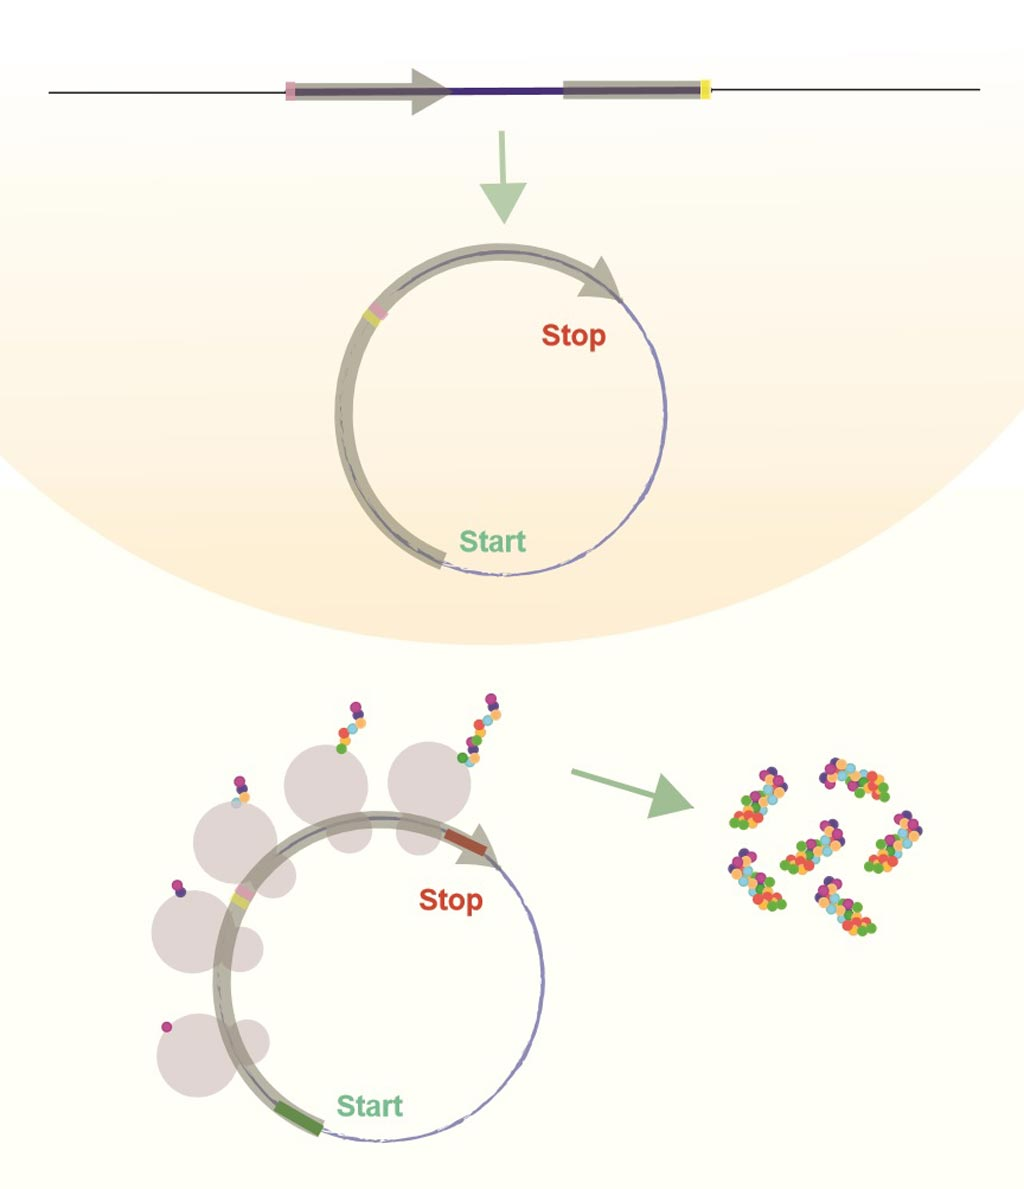 Image: Circular RNAs (circRNA) are produced in the cell nucleus after they are copied from the DNA and closed. Some circRNAs are translated and produce protein once they are exported from the nucleus (Photo courtesy of Dr. Sebastian Kadener, Hebrew University of Jerusalem).